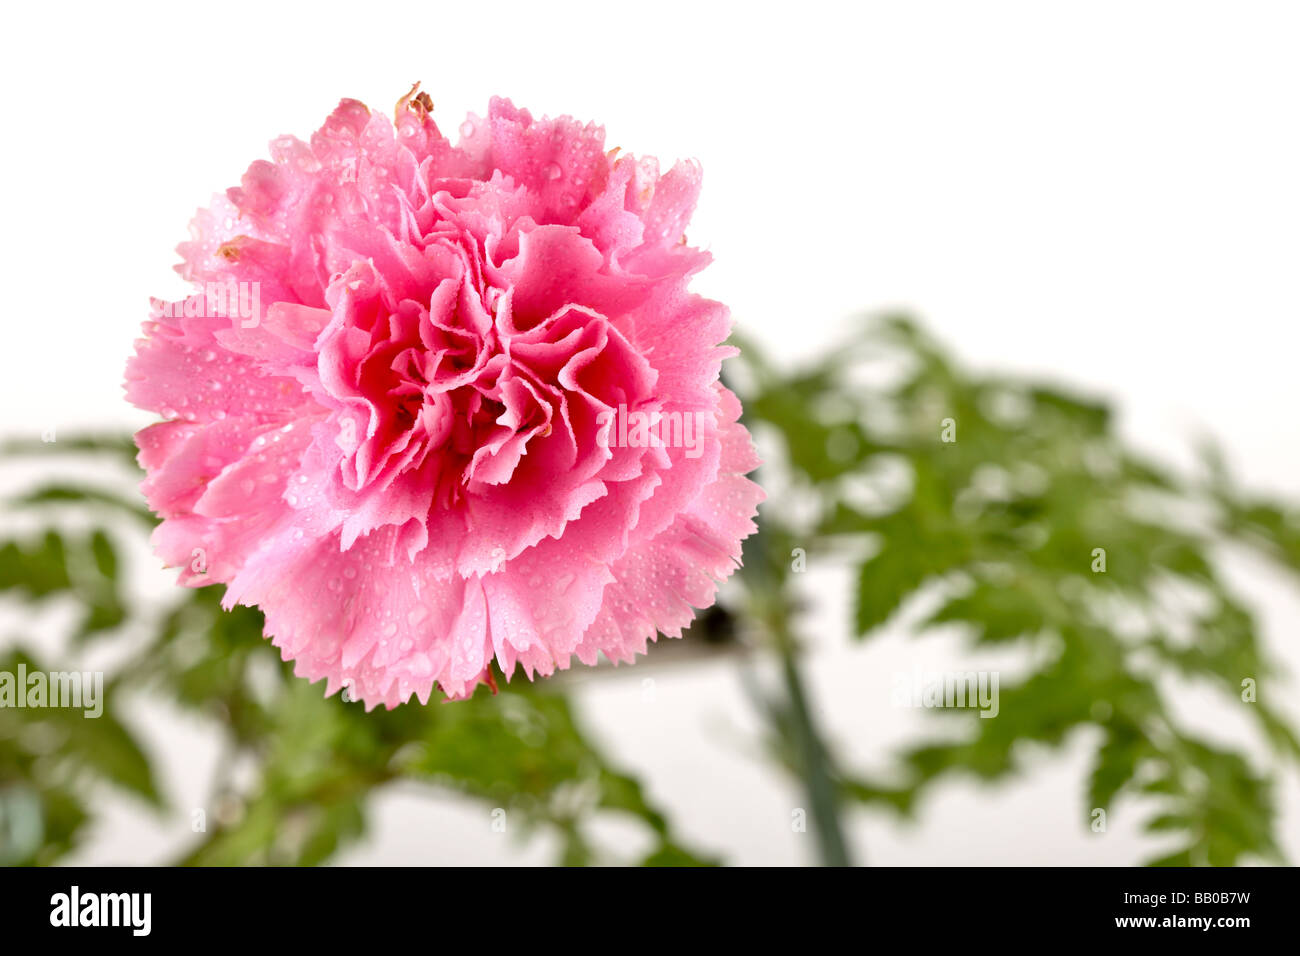 single carnation flower in bloom and isolated on background - Stock Image